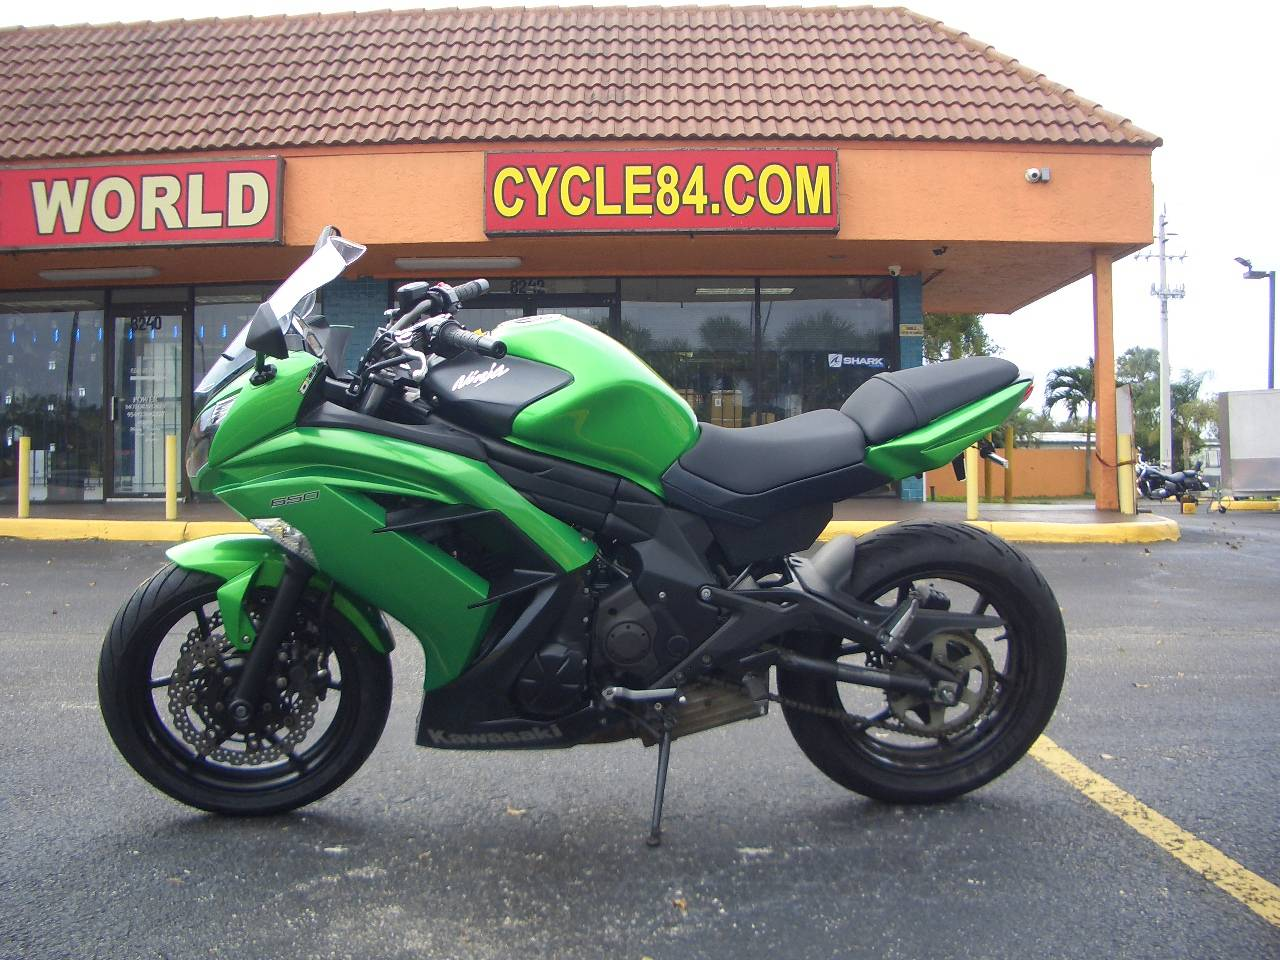 2015 Kawasaki Ninja® 650 in Fort Lauderdale, Florida - Photo 1